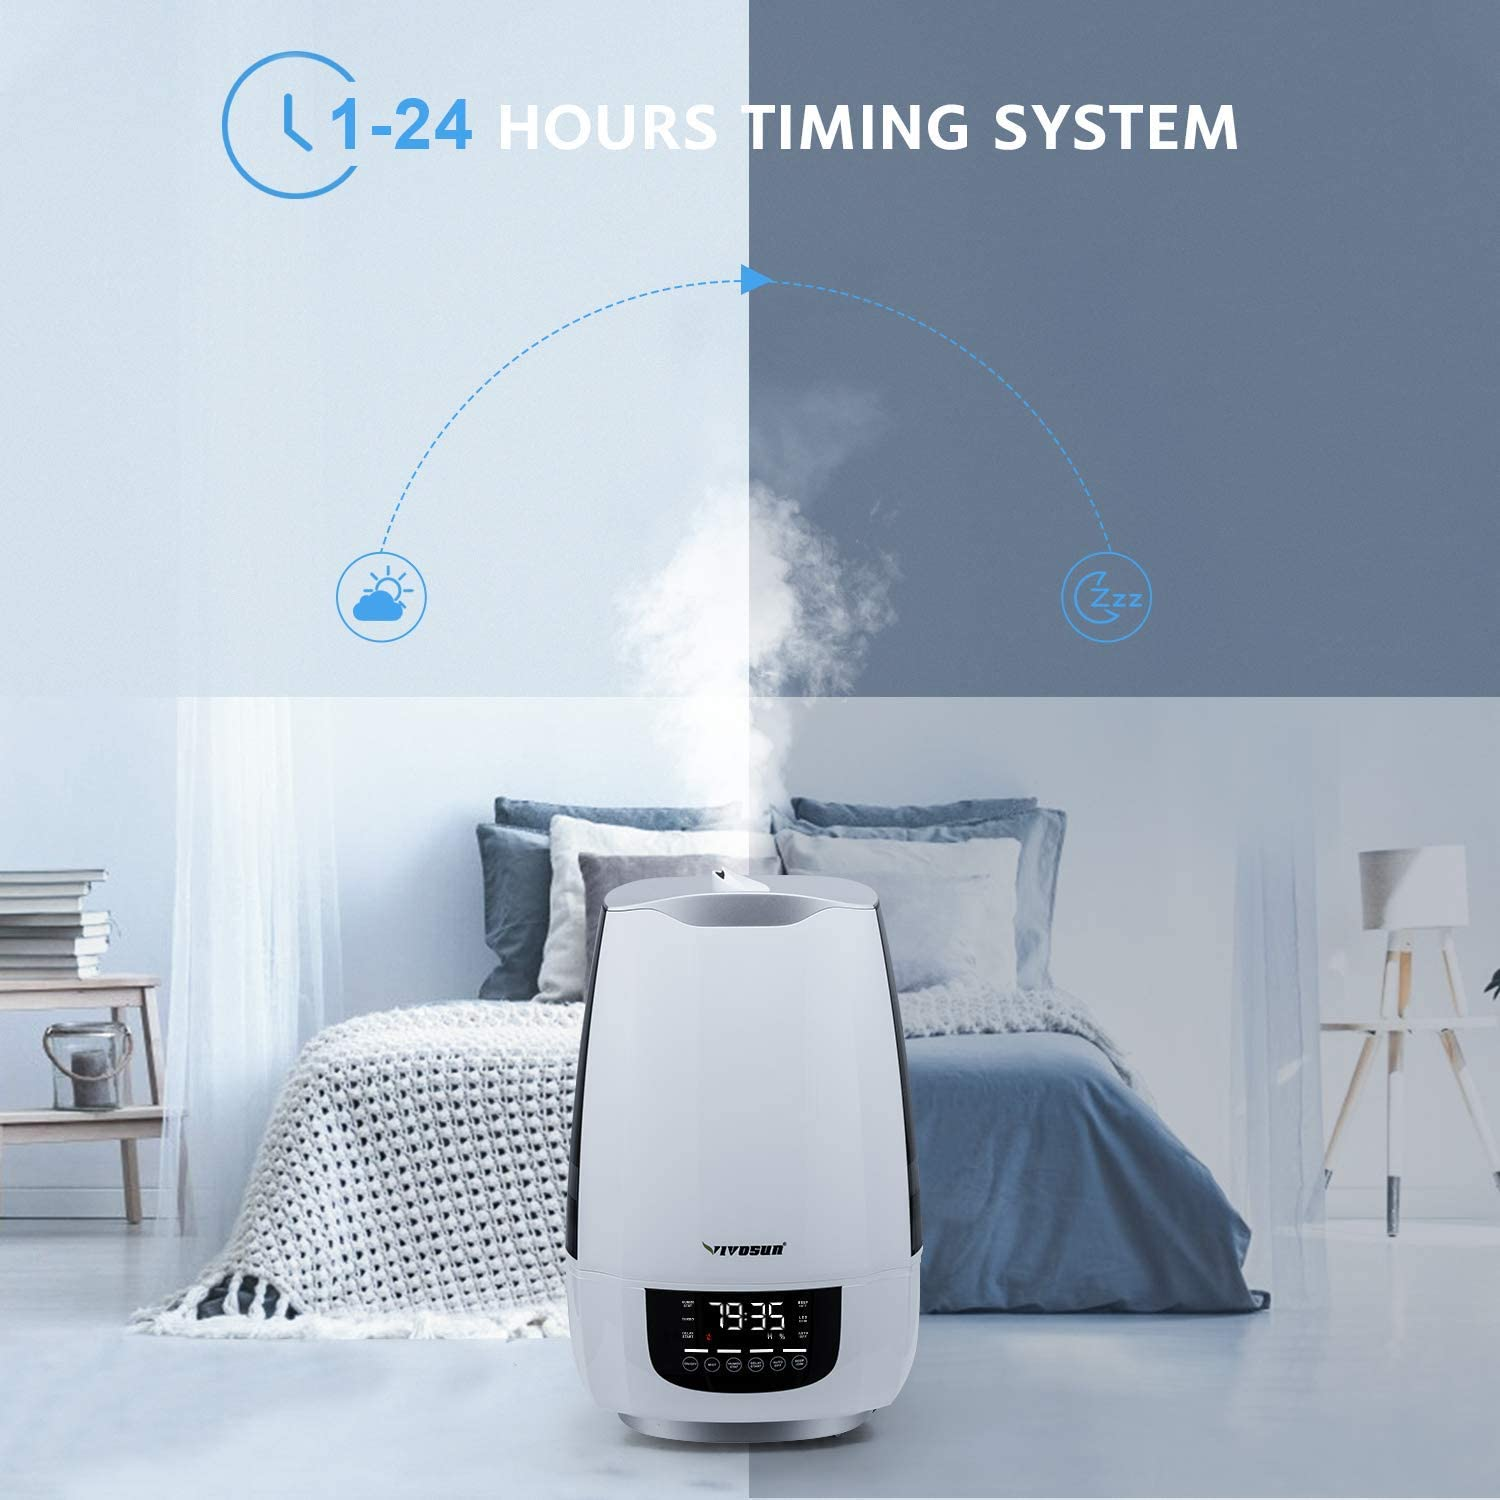 6L VIVOSUN pH and TDS Meter Combo Cool Mist Humidifier